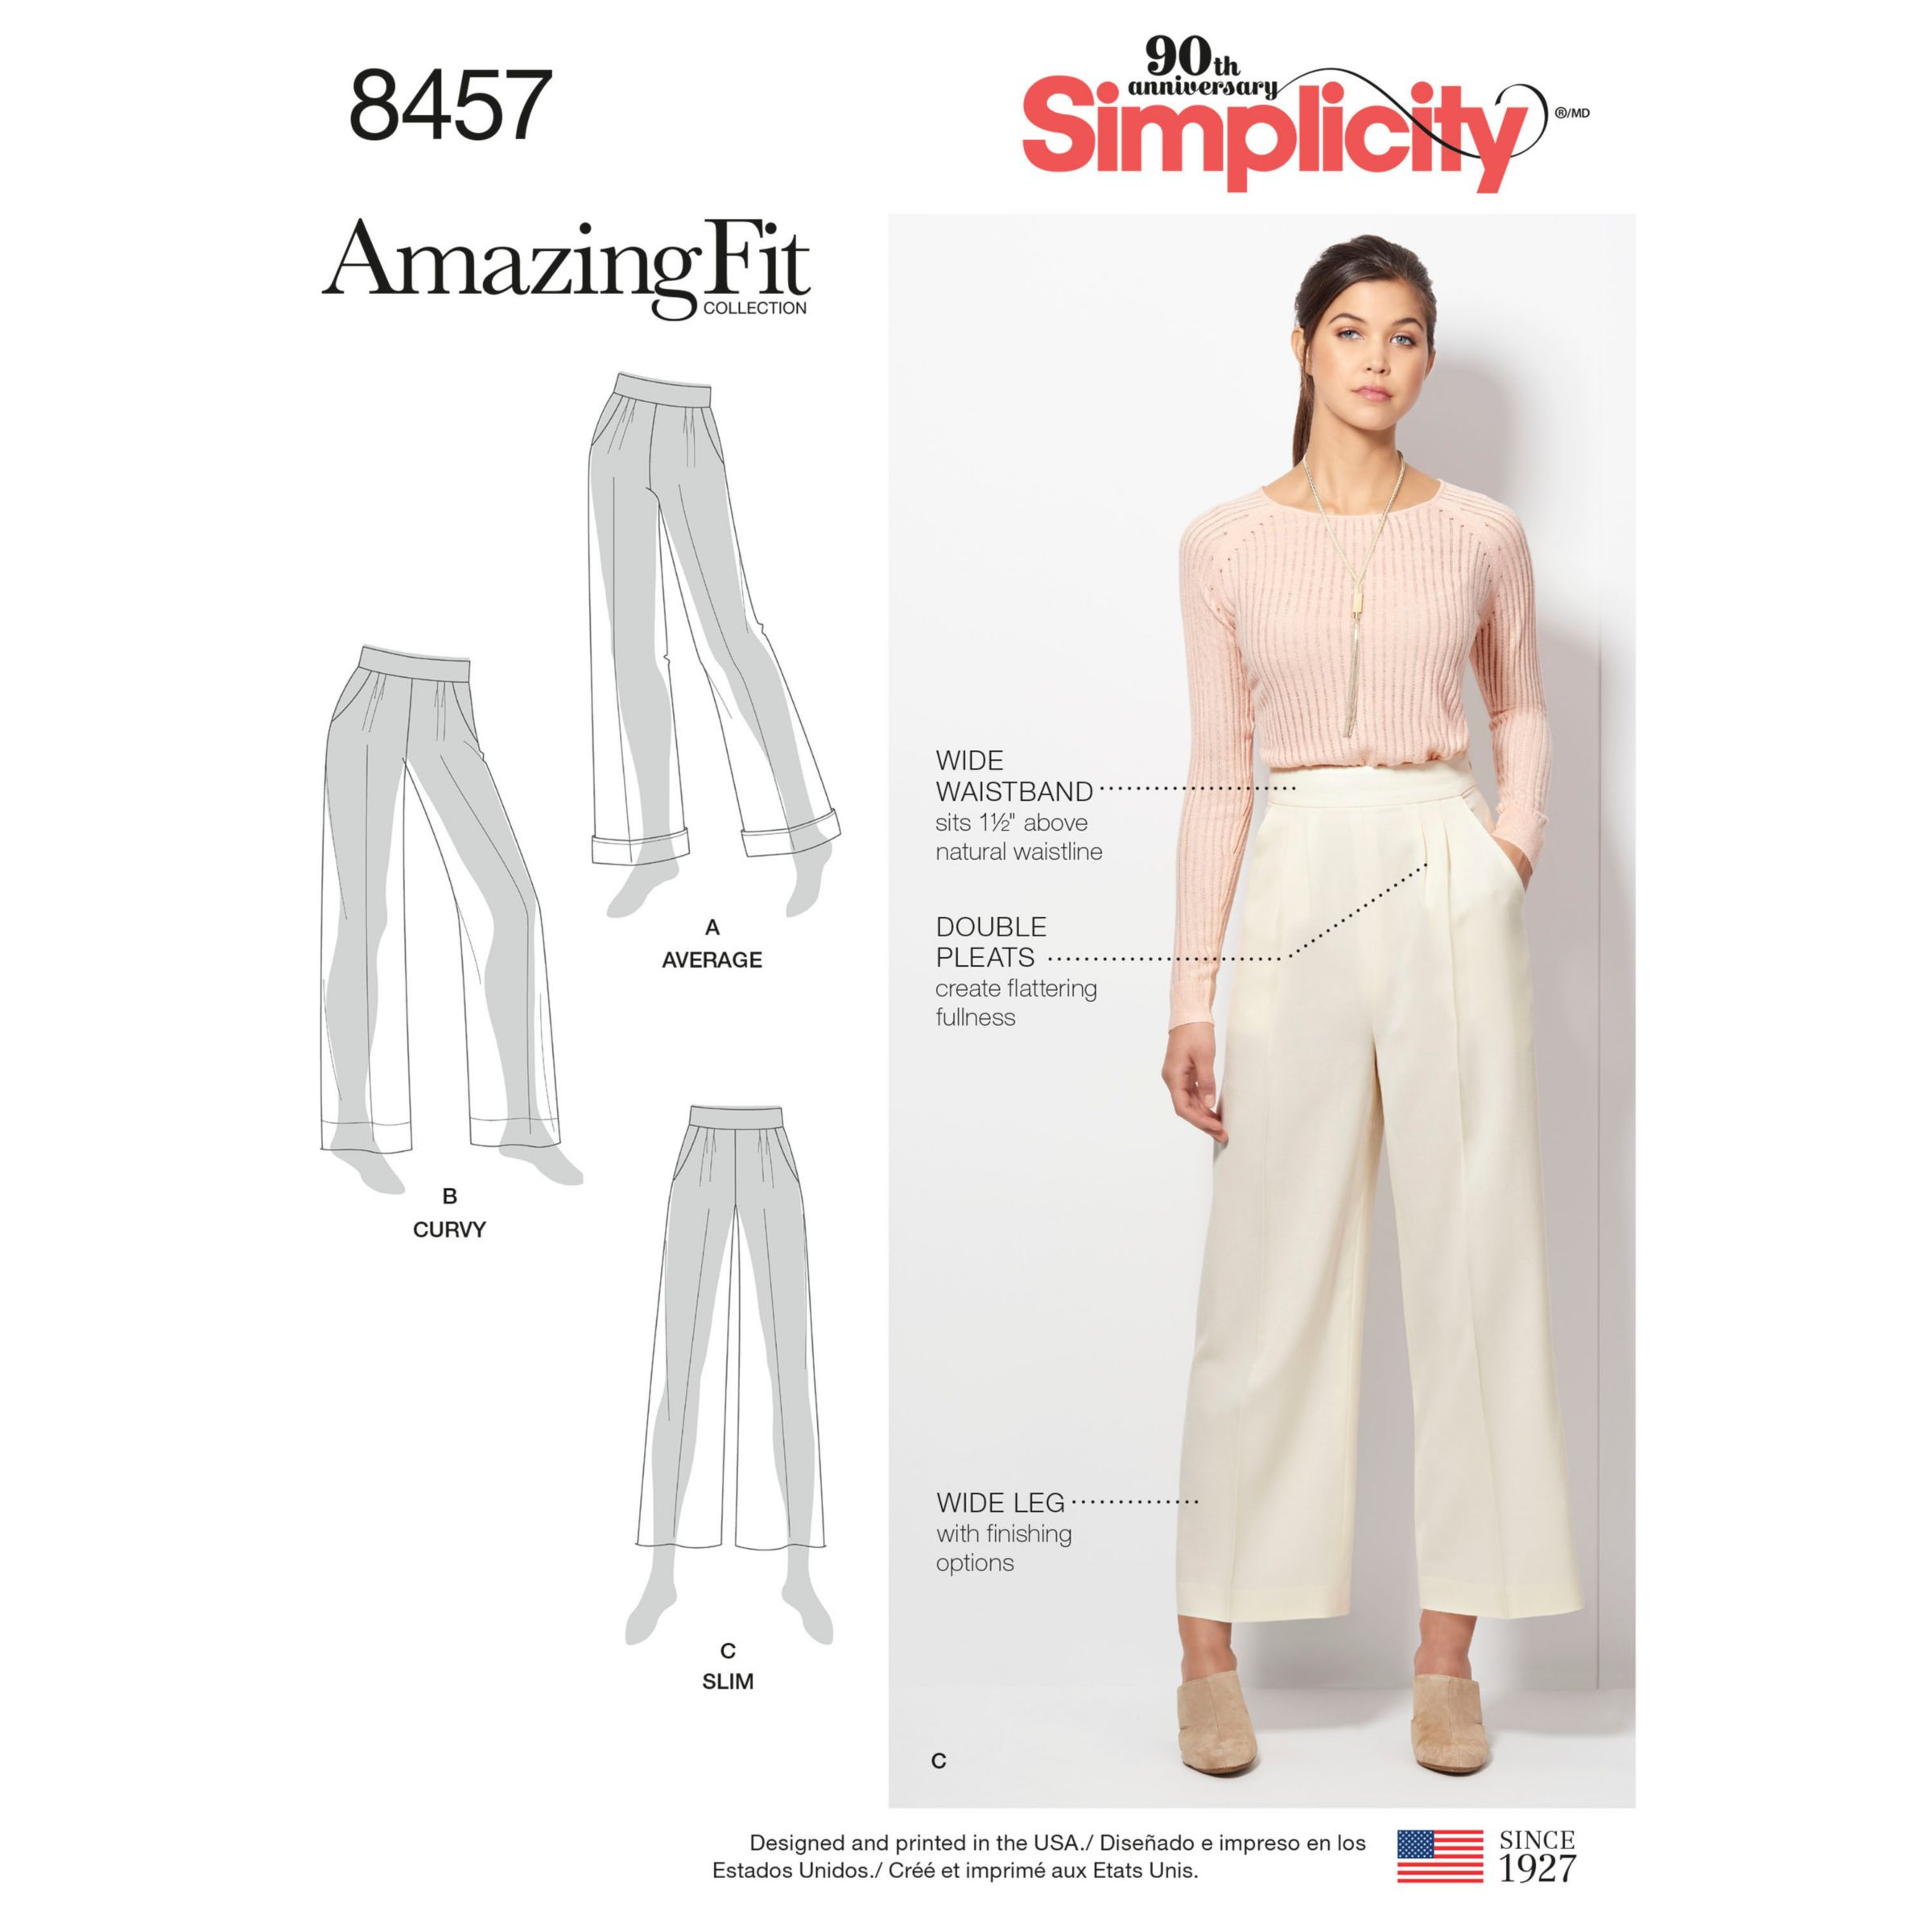 Simplicity Women S Trousers Sewing Pattern 8457 At John Lewis Partners